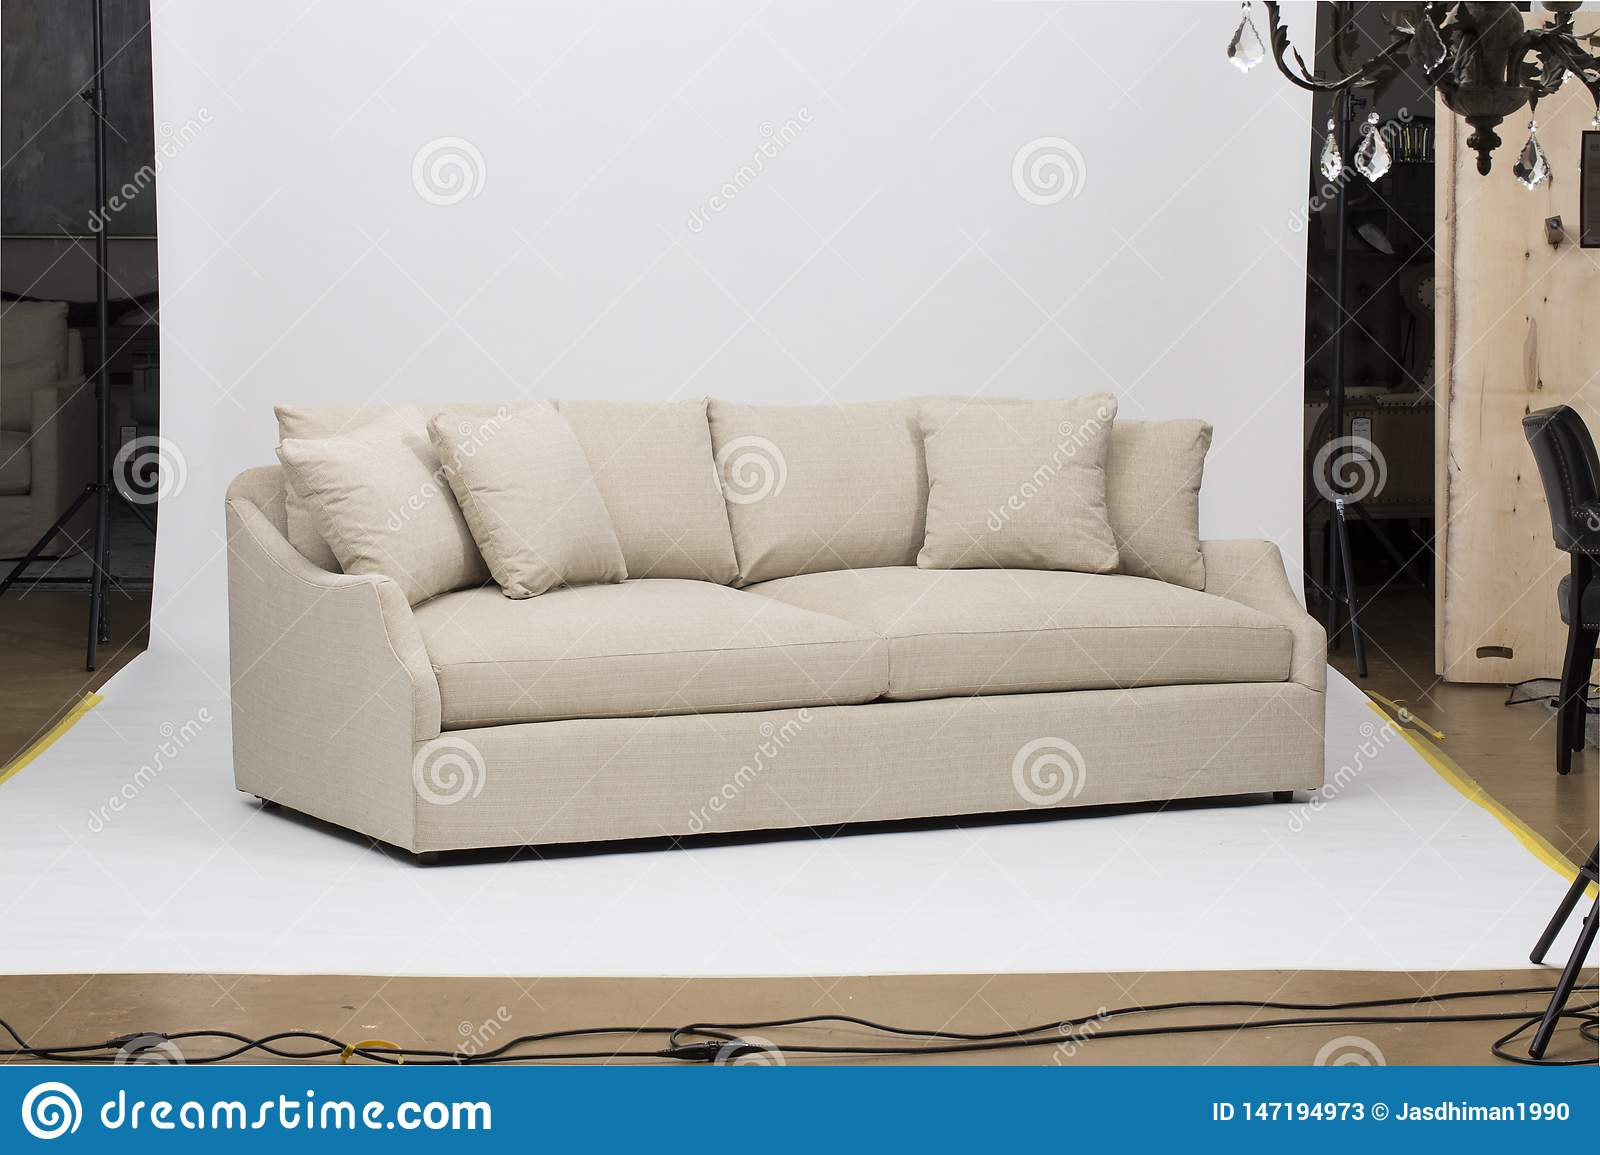 Light Pink Sofa Sofa Bed Christine Light Gray Loveseat White And Pink Pillow With White Background Image Stock Image Image Of Armchair Commercial 147194973